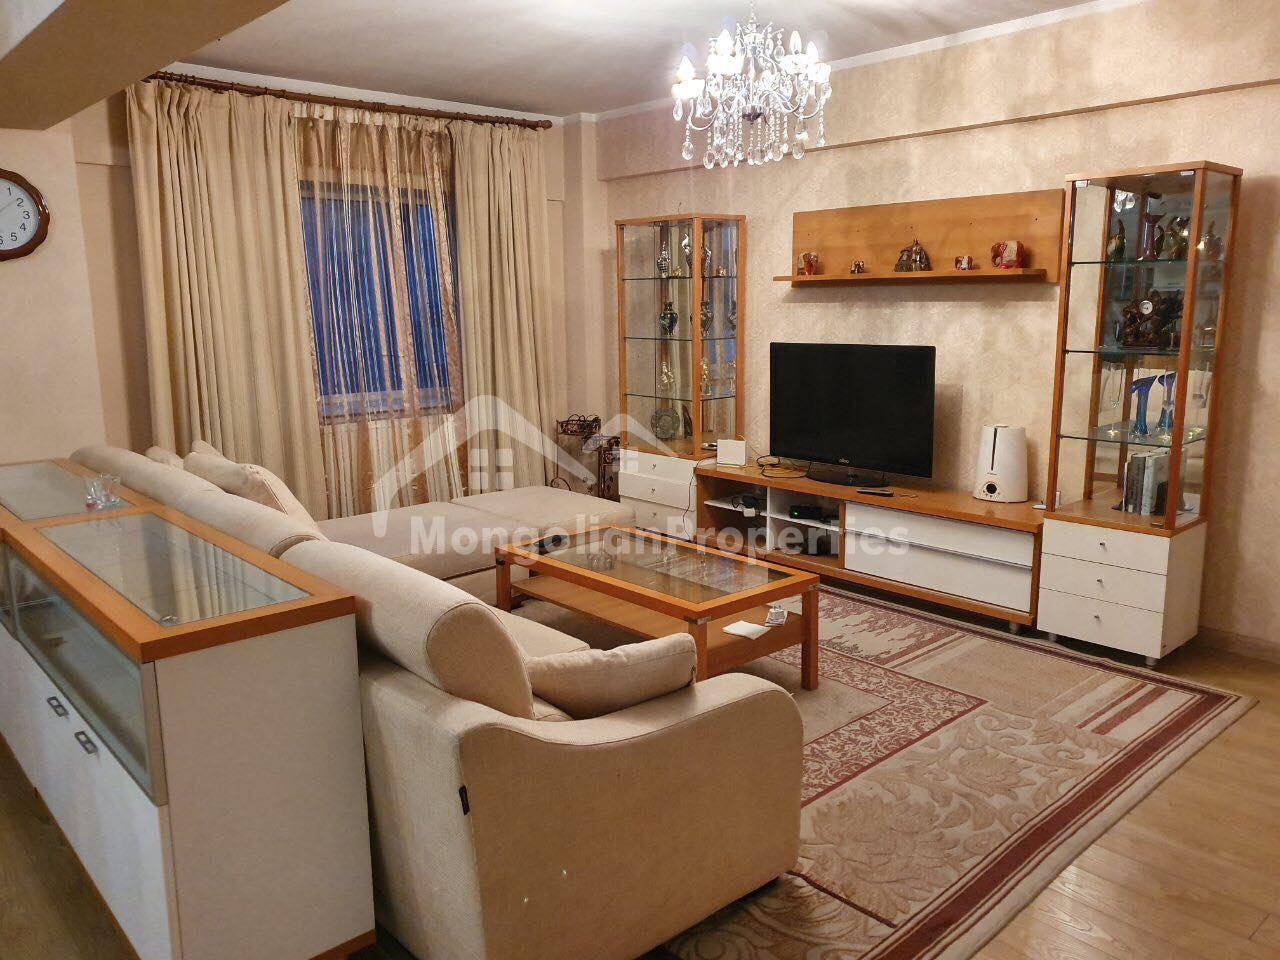 For rent: Spacious 2 bedroom apartment is for rent at the One Residence